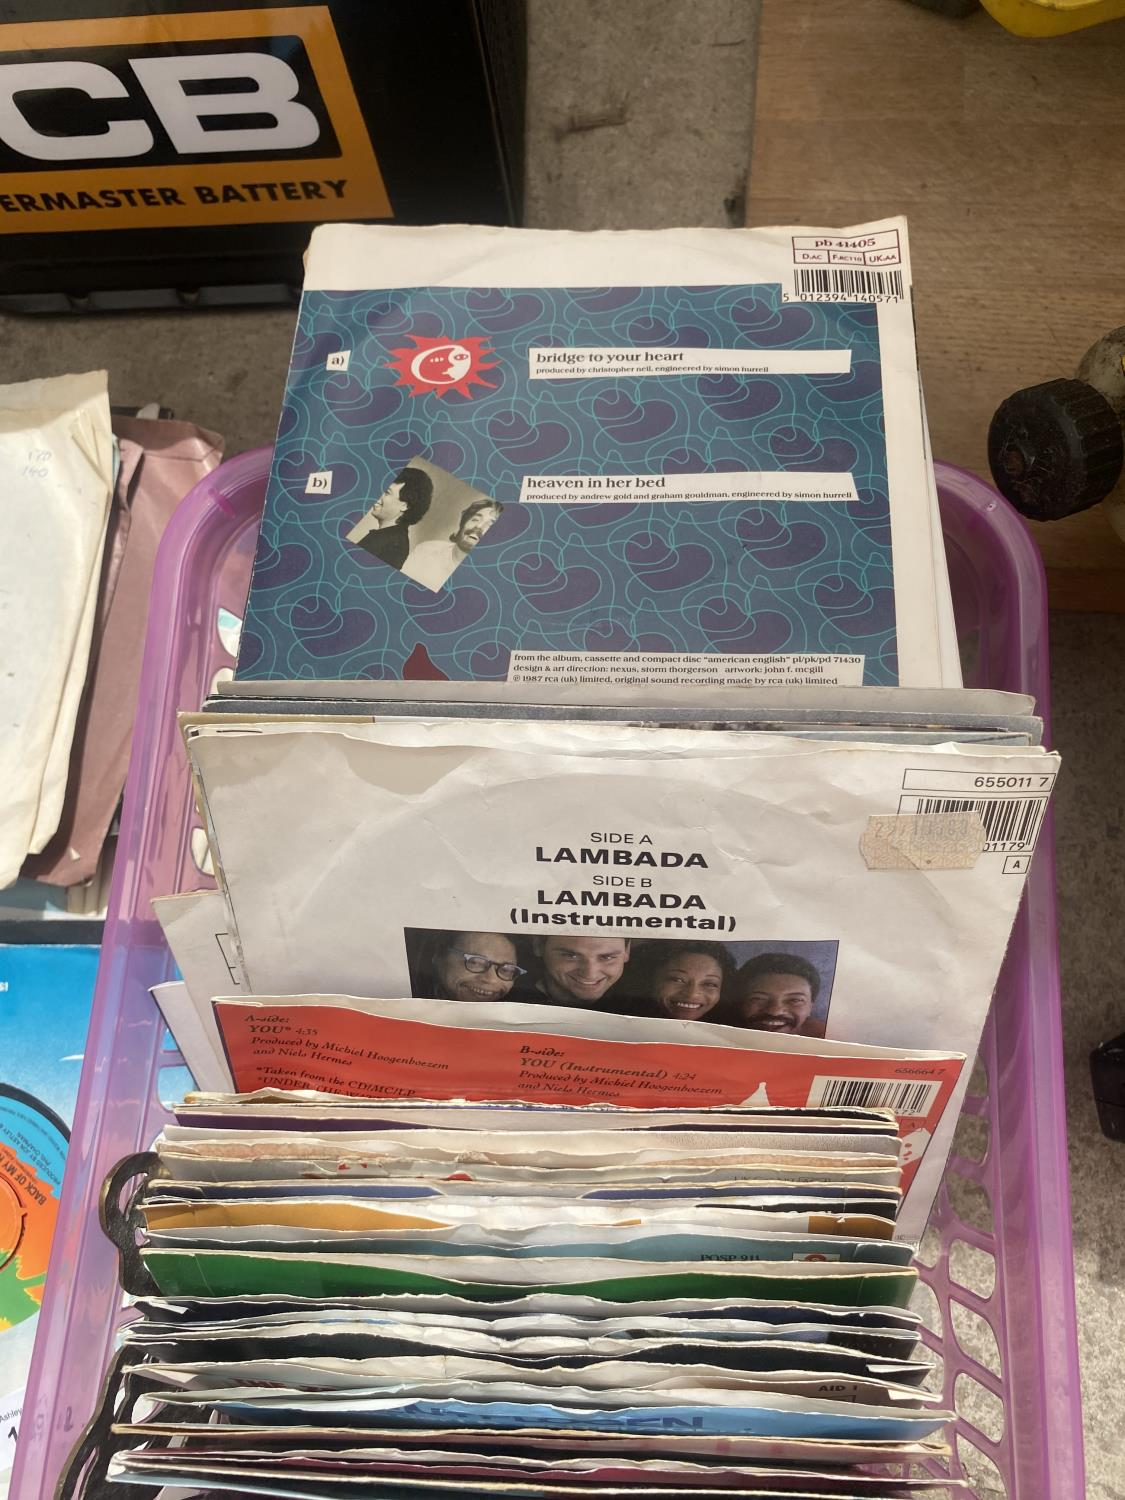 AN ASSORTMENT OF VINTAGE LP RECORDS - Image 4 of 4